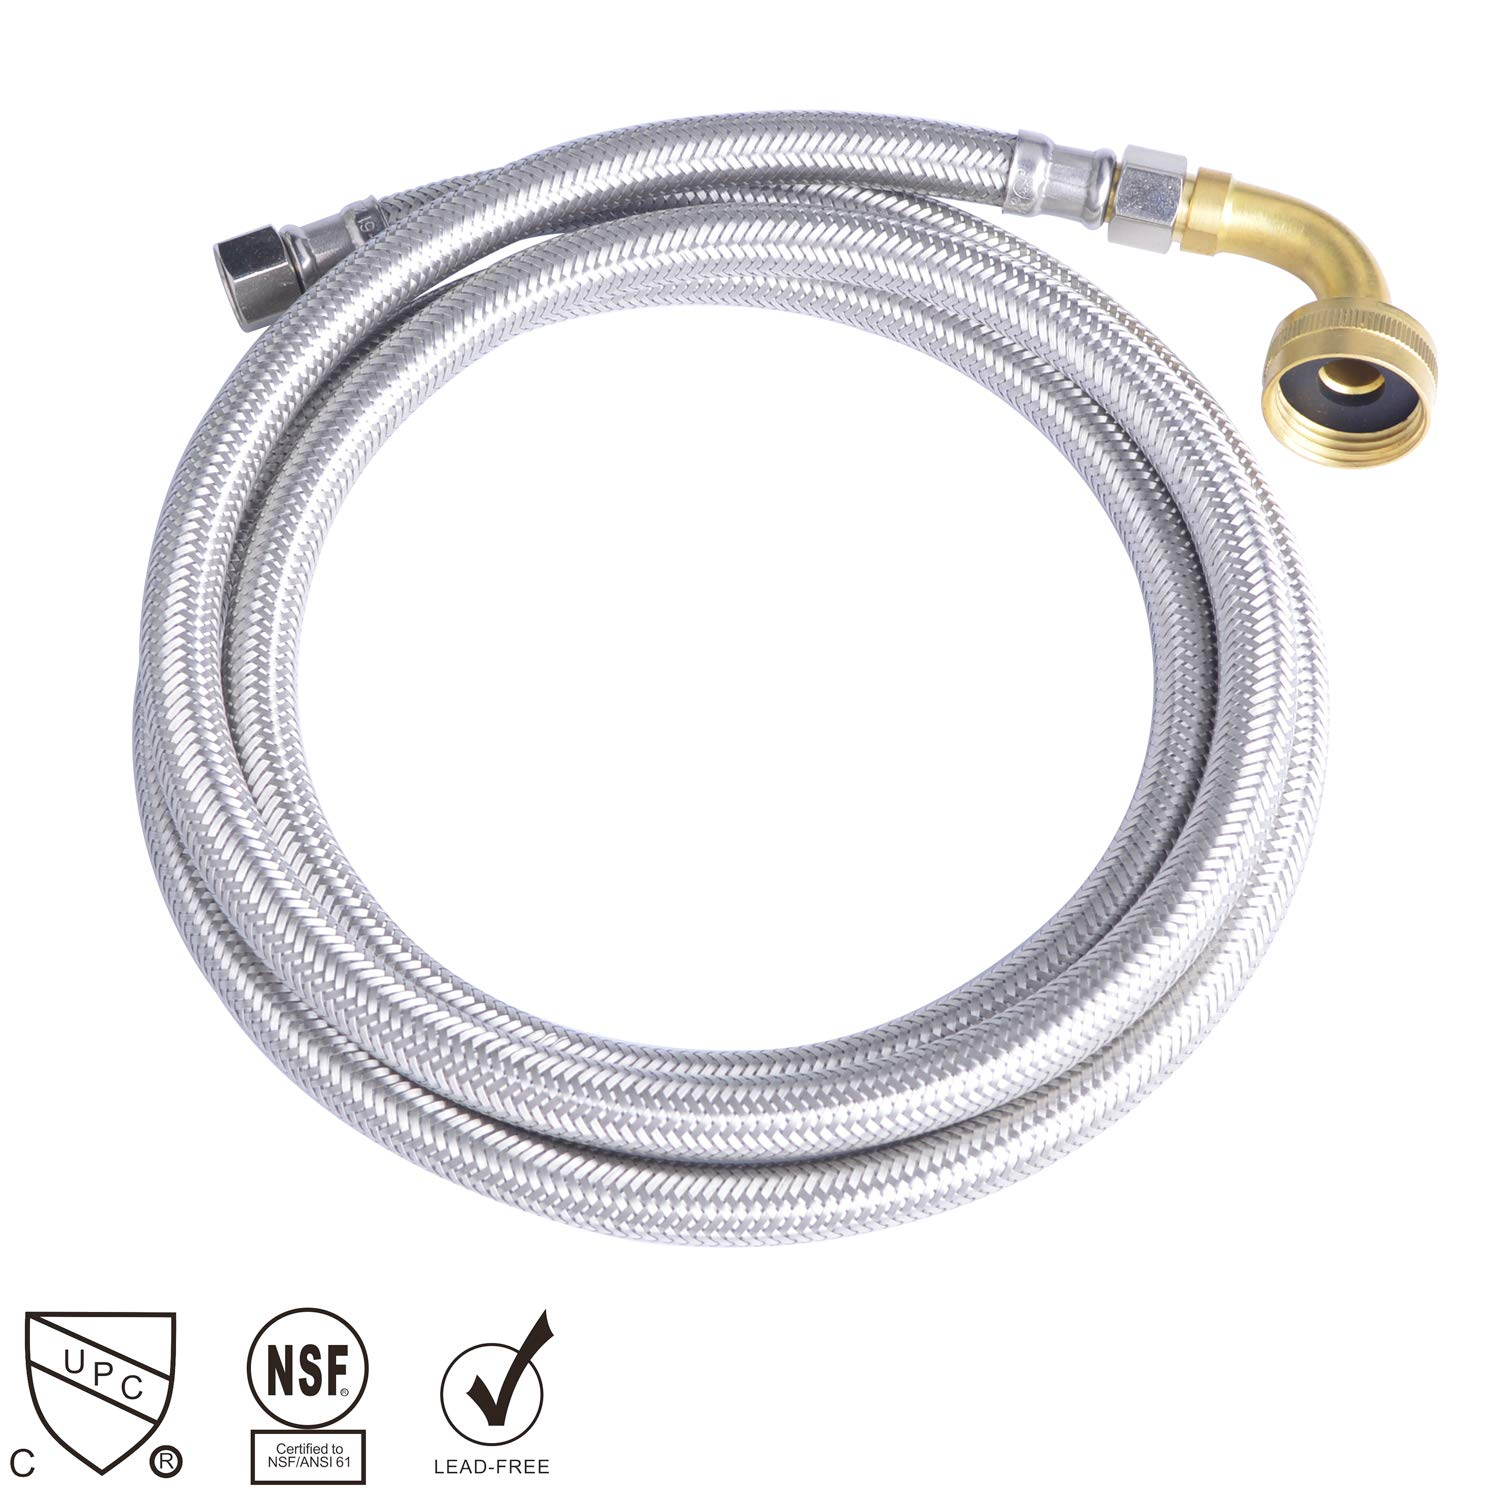 "Hydro Master 0152104 72 inches Braided Stainless Steel Dishwasher Connector with Elbow, 3/8"" Comp x 3/8"" Comp, Lead Free"